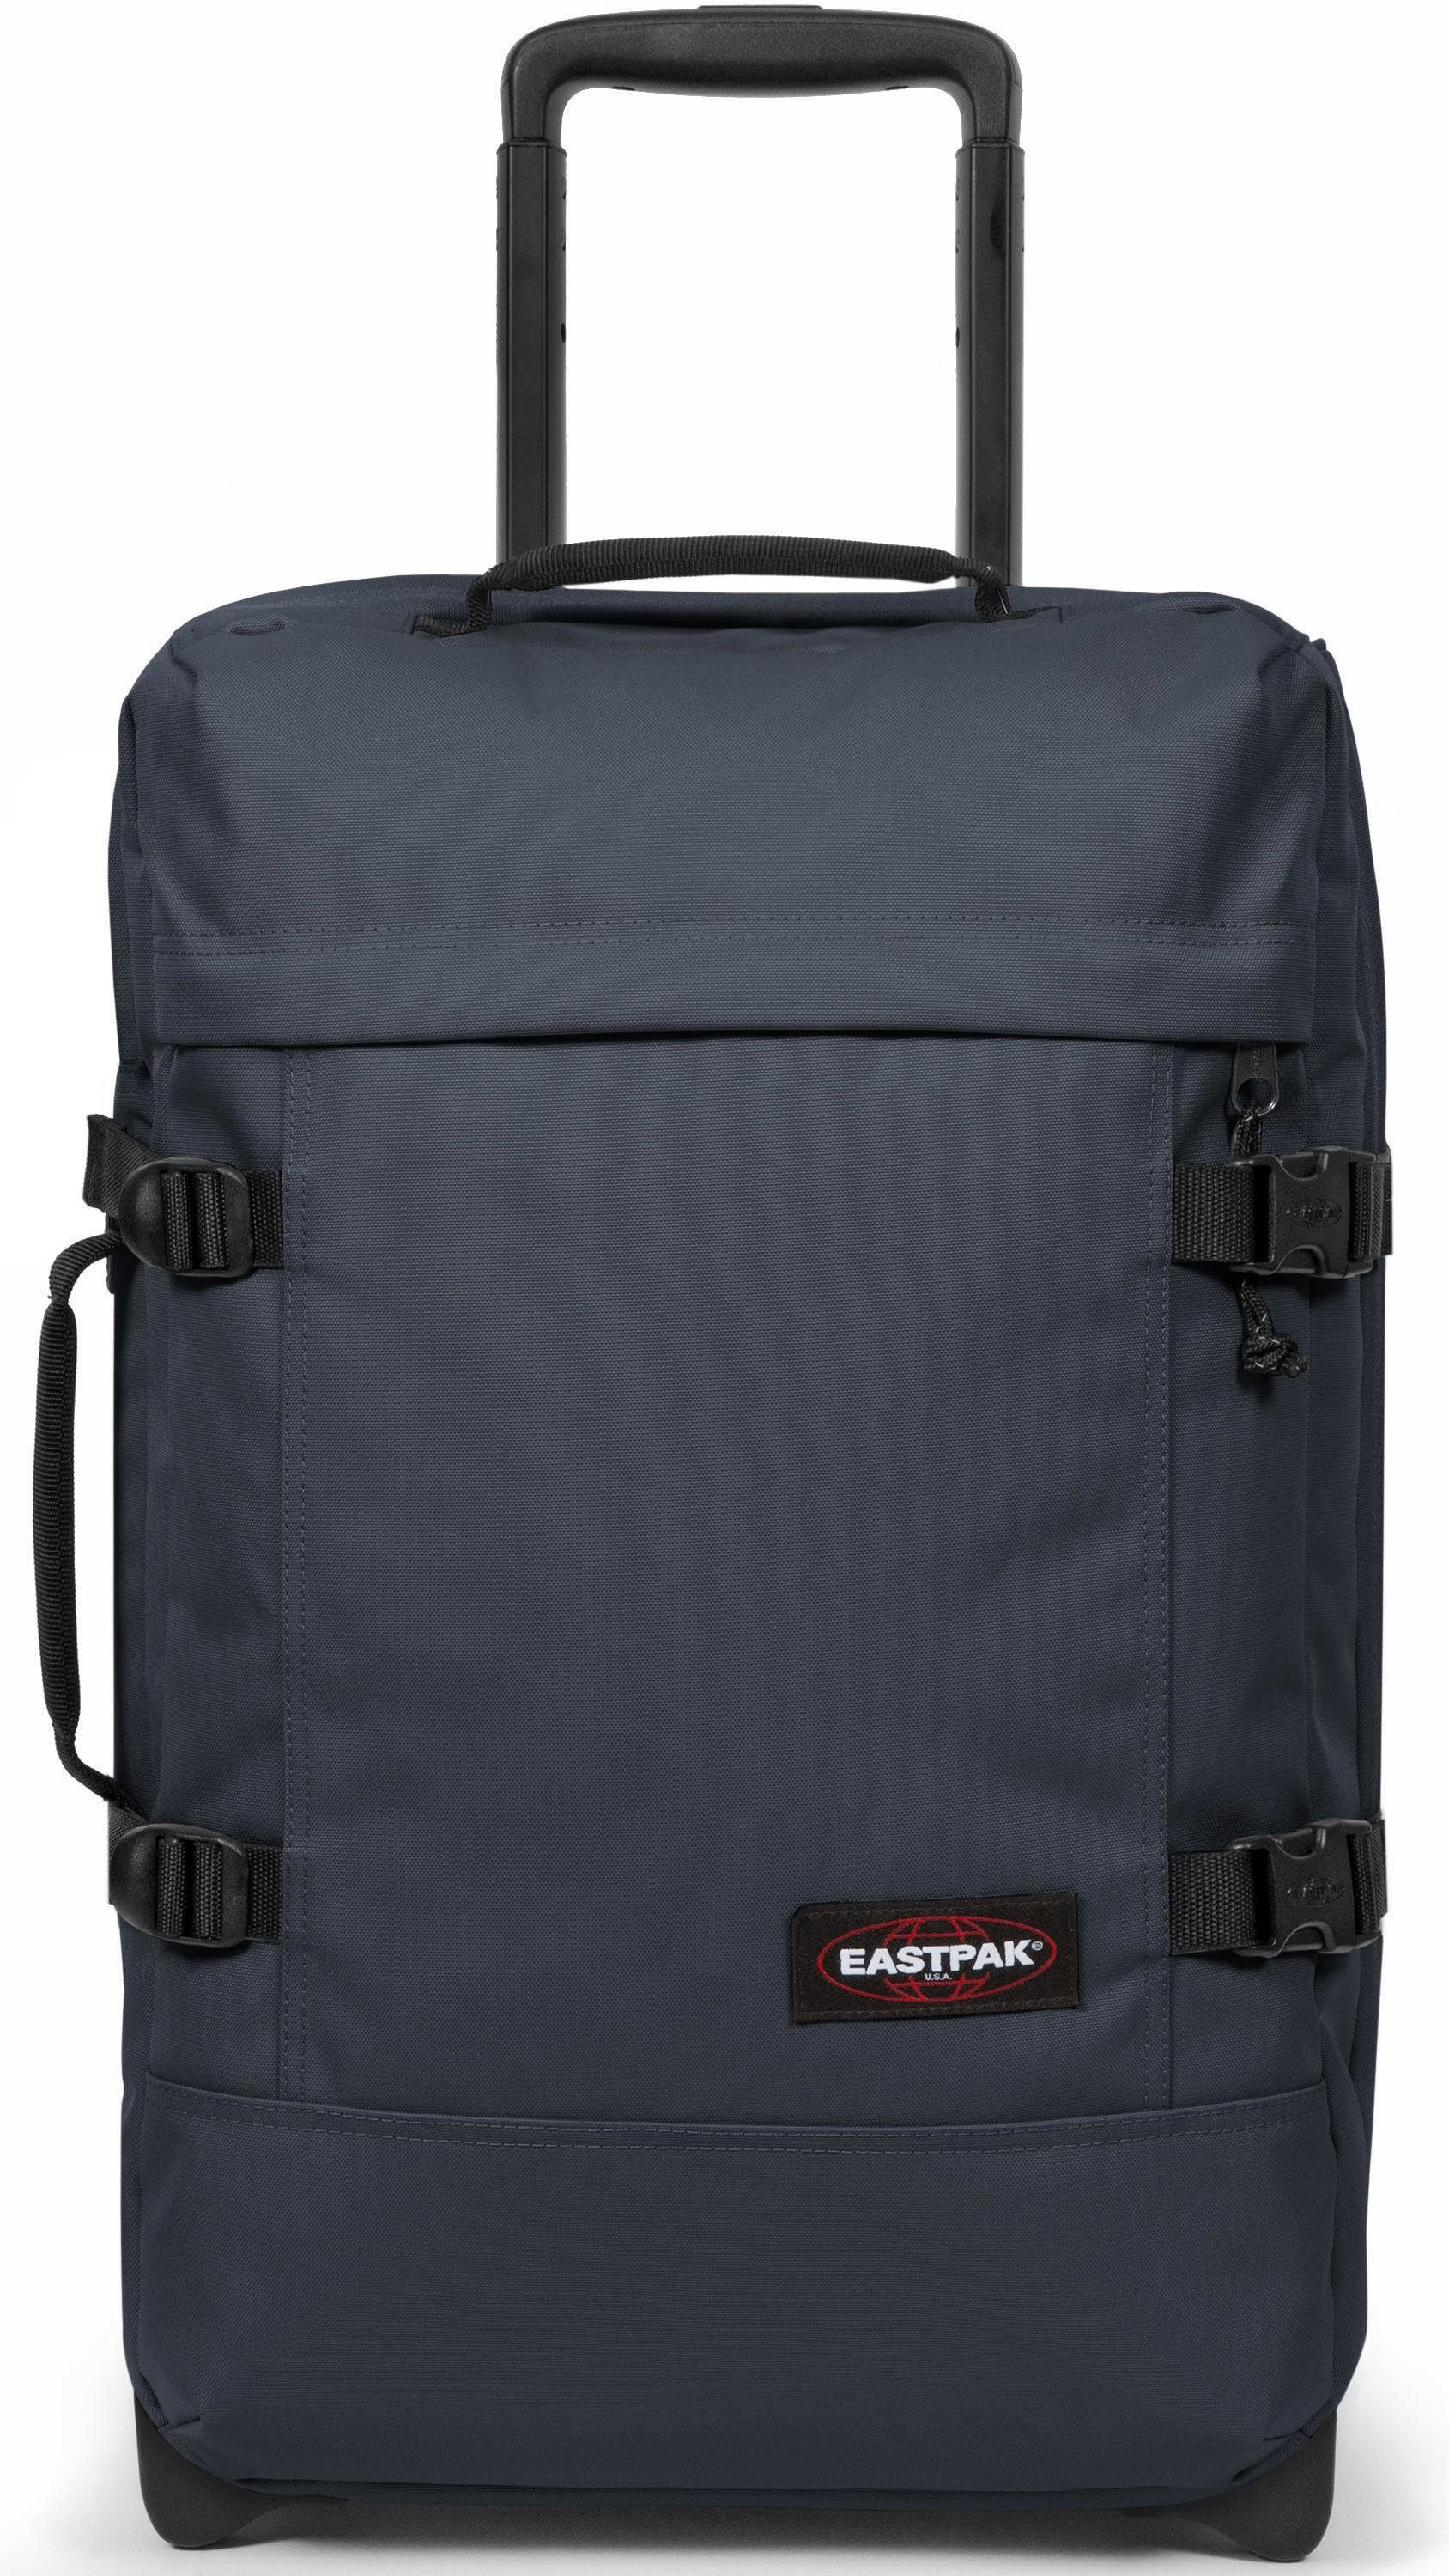 Eastpak Reisetasche mit 2 Rollen, »TRANVERZ WHEELED LUGGAGE S, quiet grey«